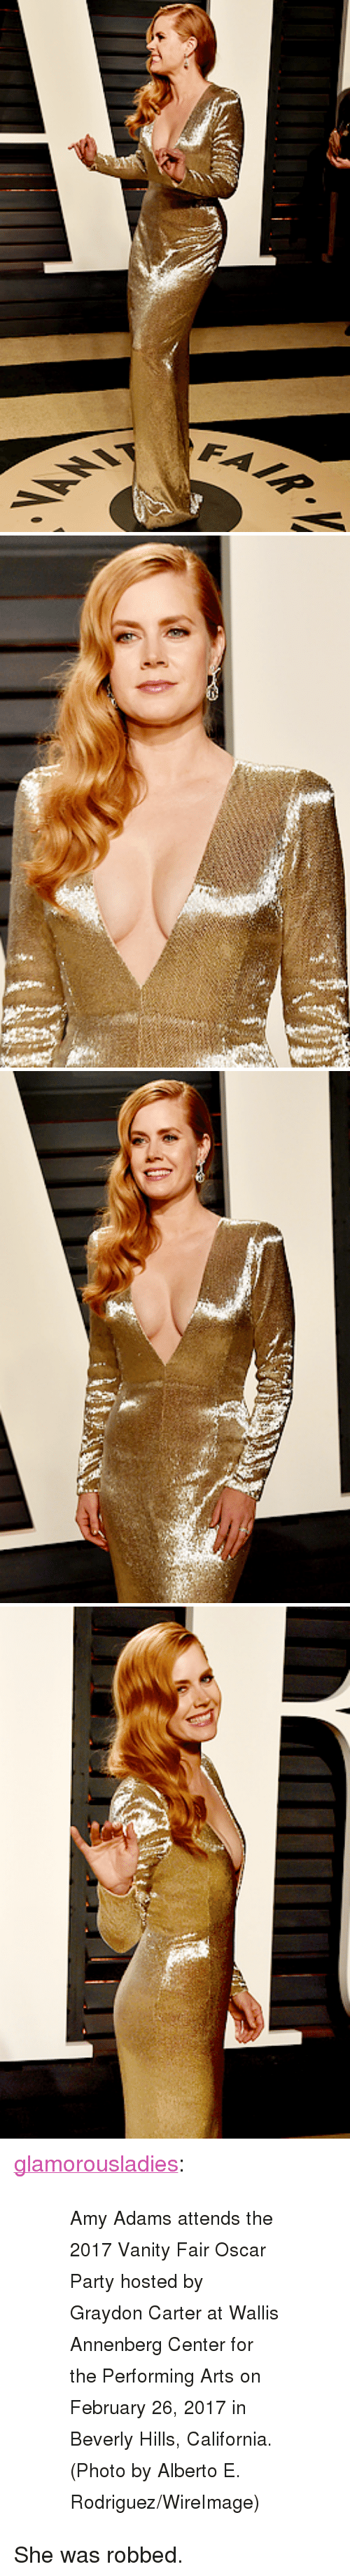 "vanity fair: <p><a href=""http://glamorousladies.tumblr.com/post/157769090312/amy-adams-attends-the-2017-vanity-fair-oscar-party"" class=""tumblr_blog"">glamorousladies</a>:</p><blockquote><blockquote><p><small>   Amy Adams attends the 2017 Vanity Fair Oscar Party hosted by Graydon Carter at Wallis Annenberg Center for the Performing Arts on February 26, 2017 in Beverly Hills, California. (Photo by Alberto E. Rodriguez/WireImage)  </small><br/></p></blockquote></blockquote>  <p>She was robbed.</p>"